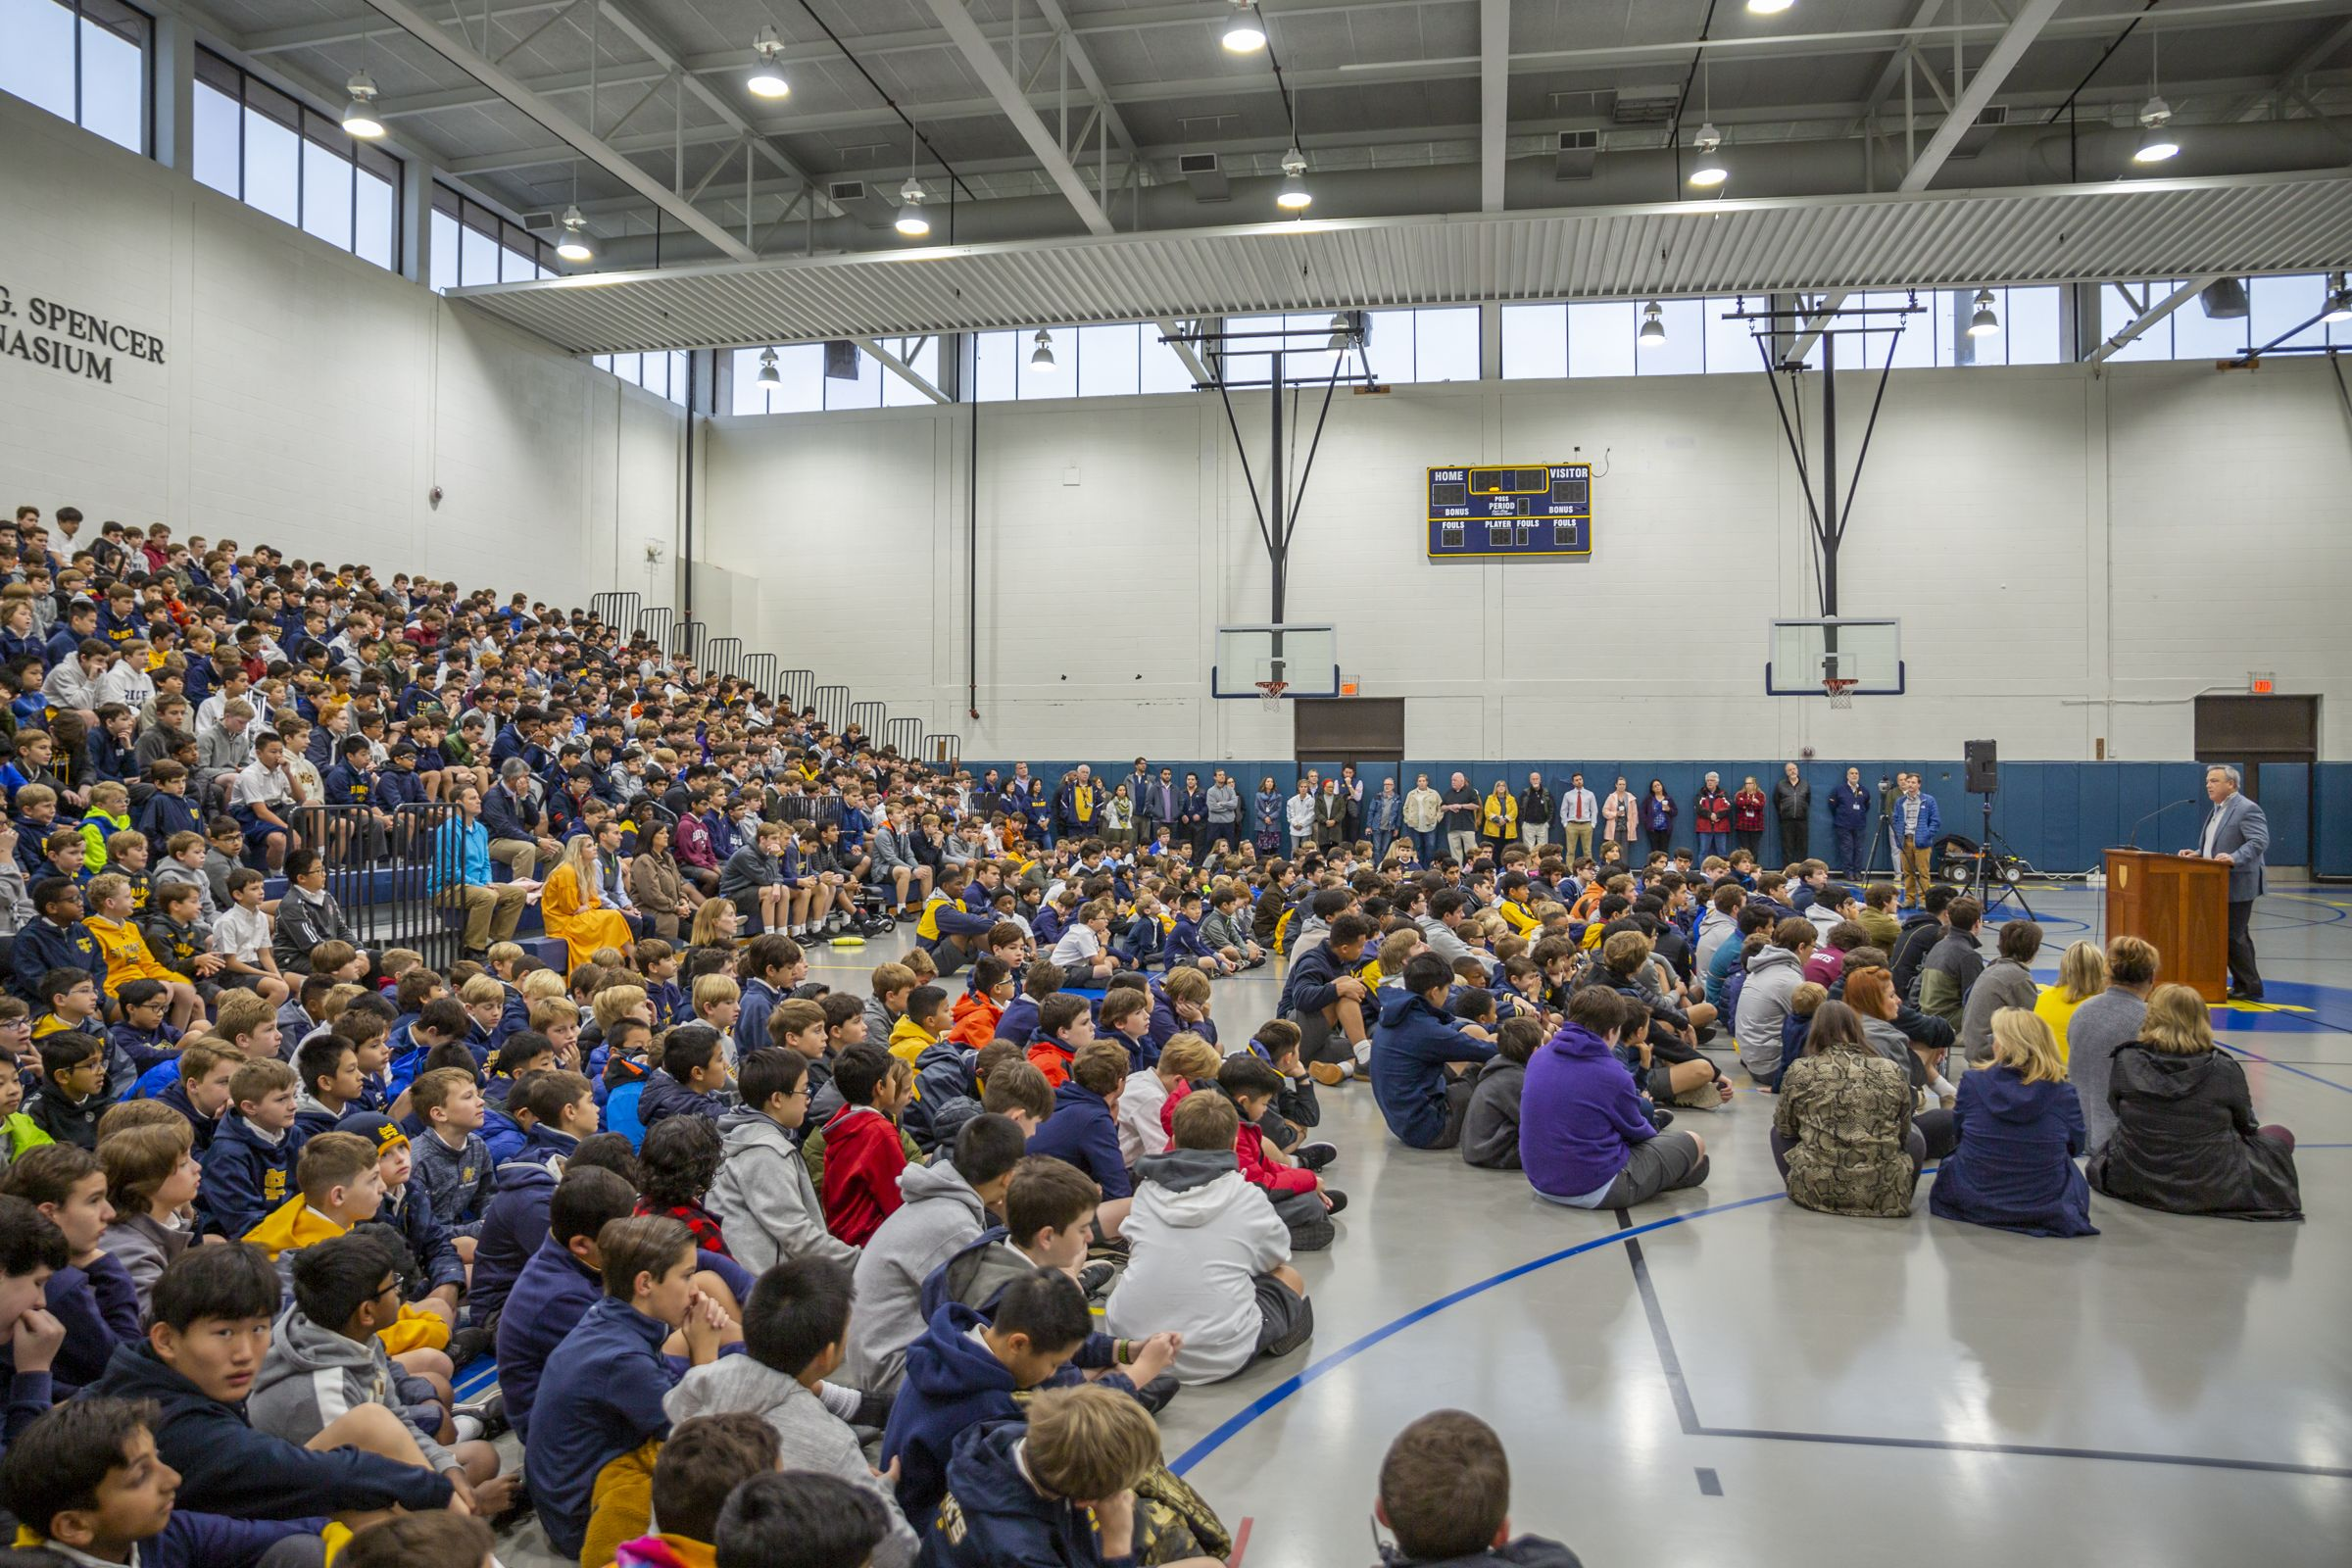 On the first day of classes following the tornado, the entire community gathered in Spencer Gym for a special assembly.